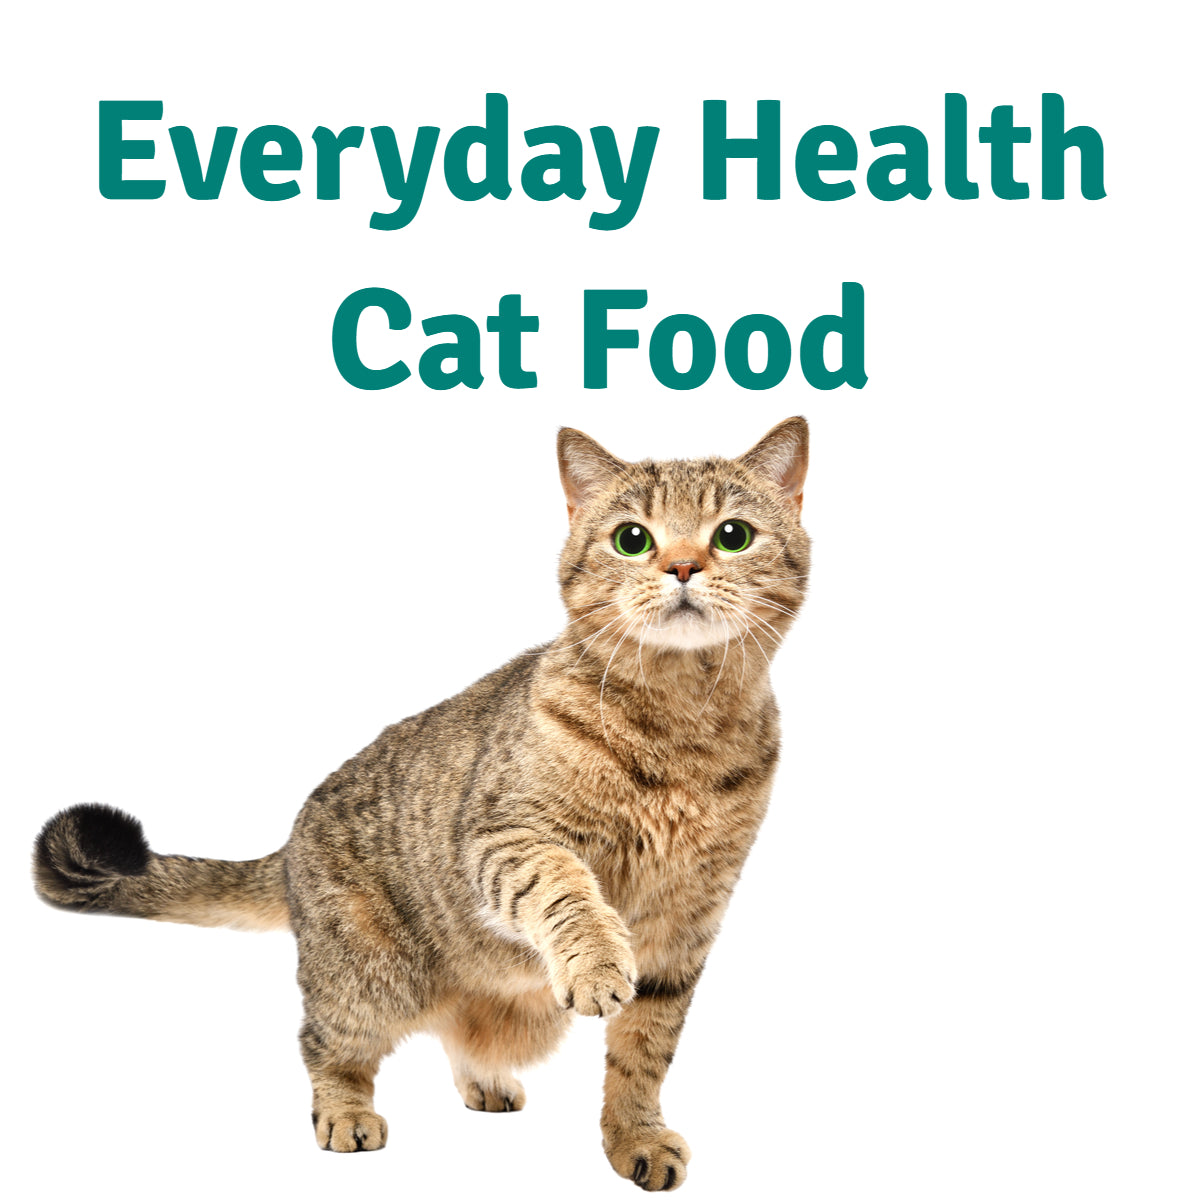 Everyday Food for Cats